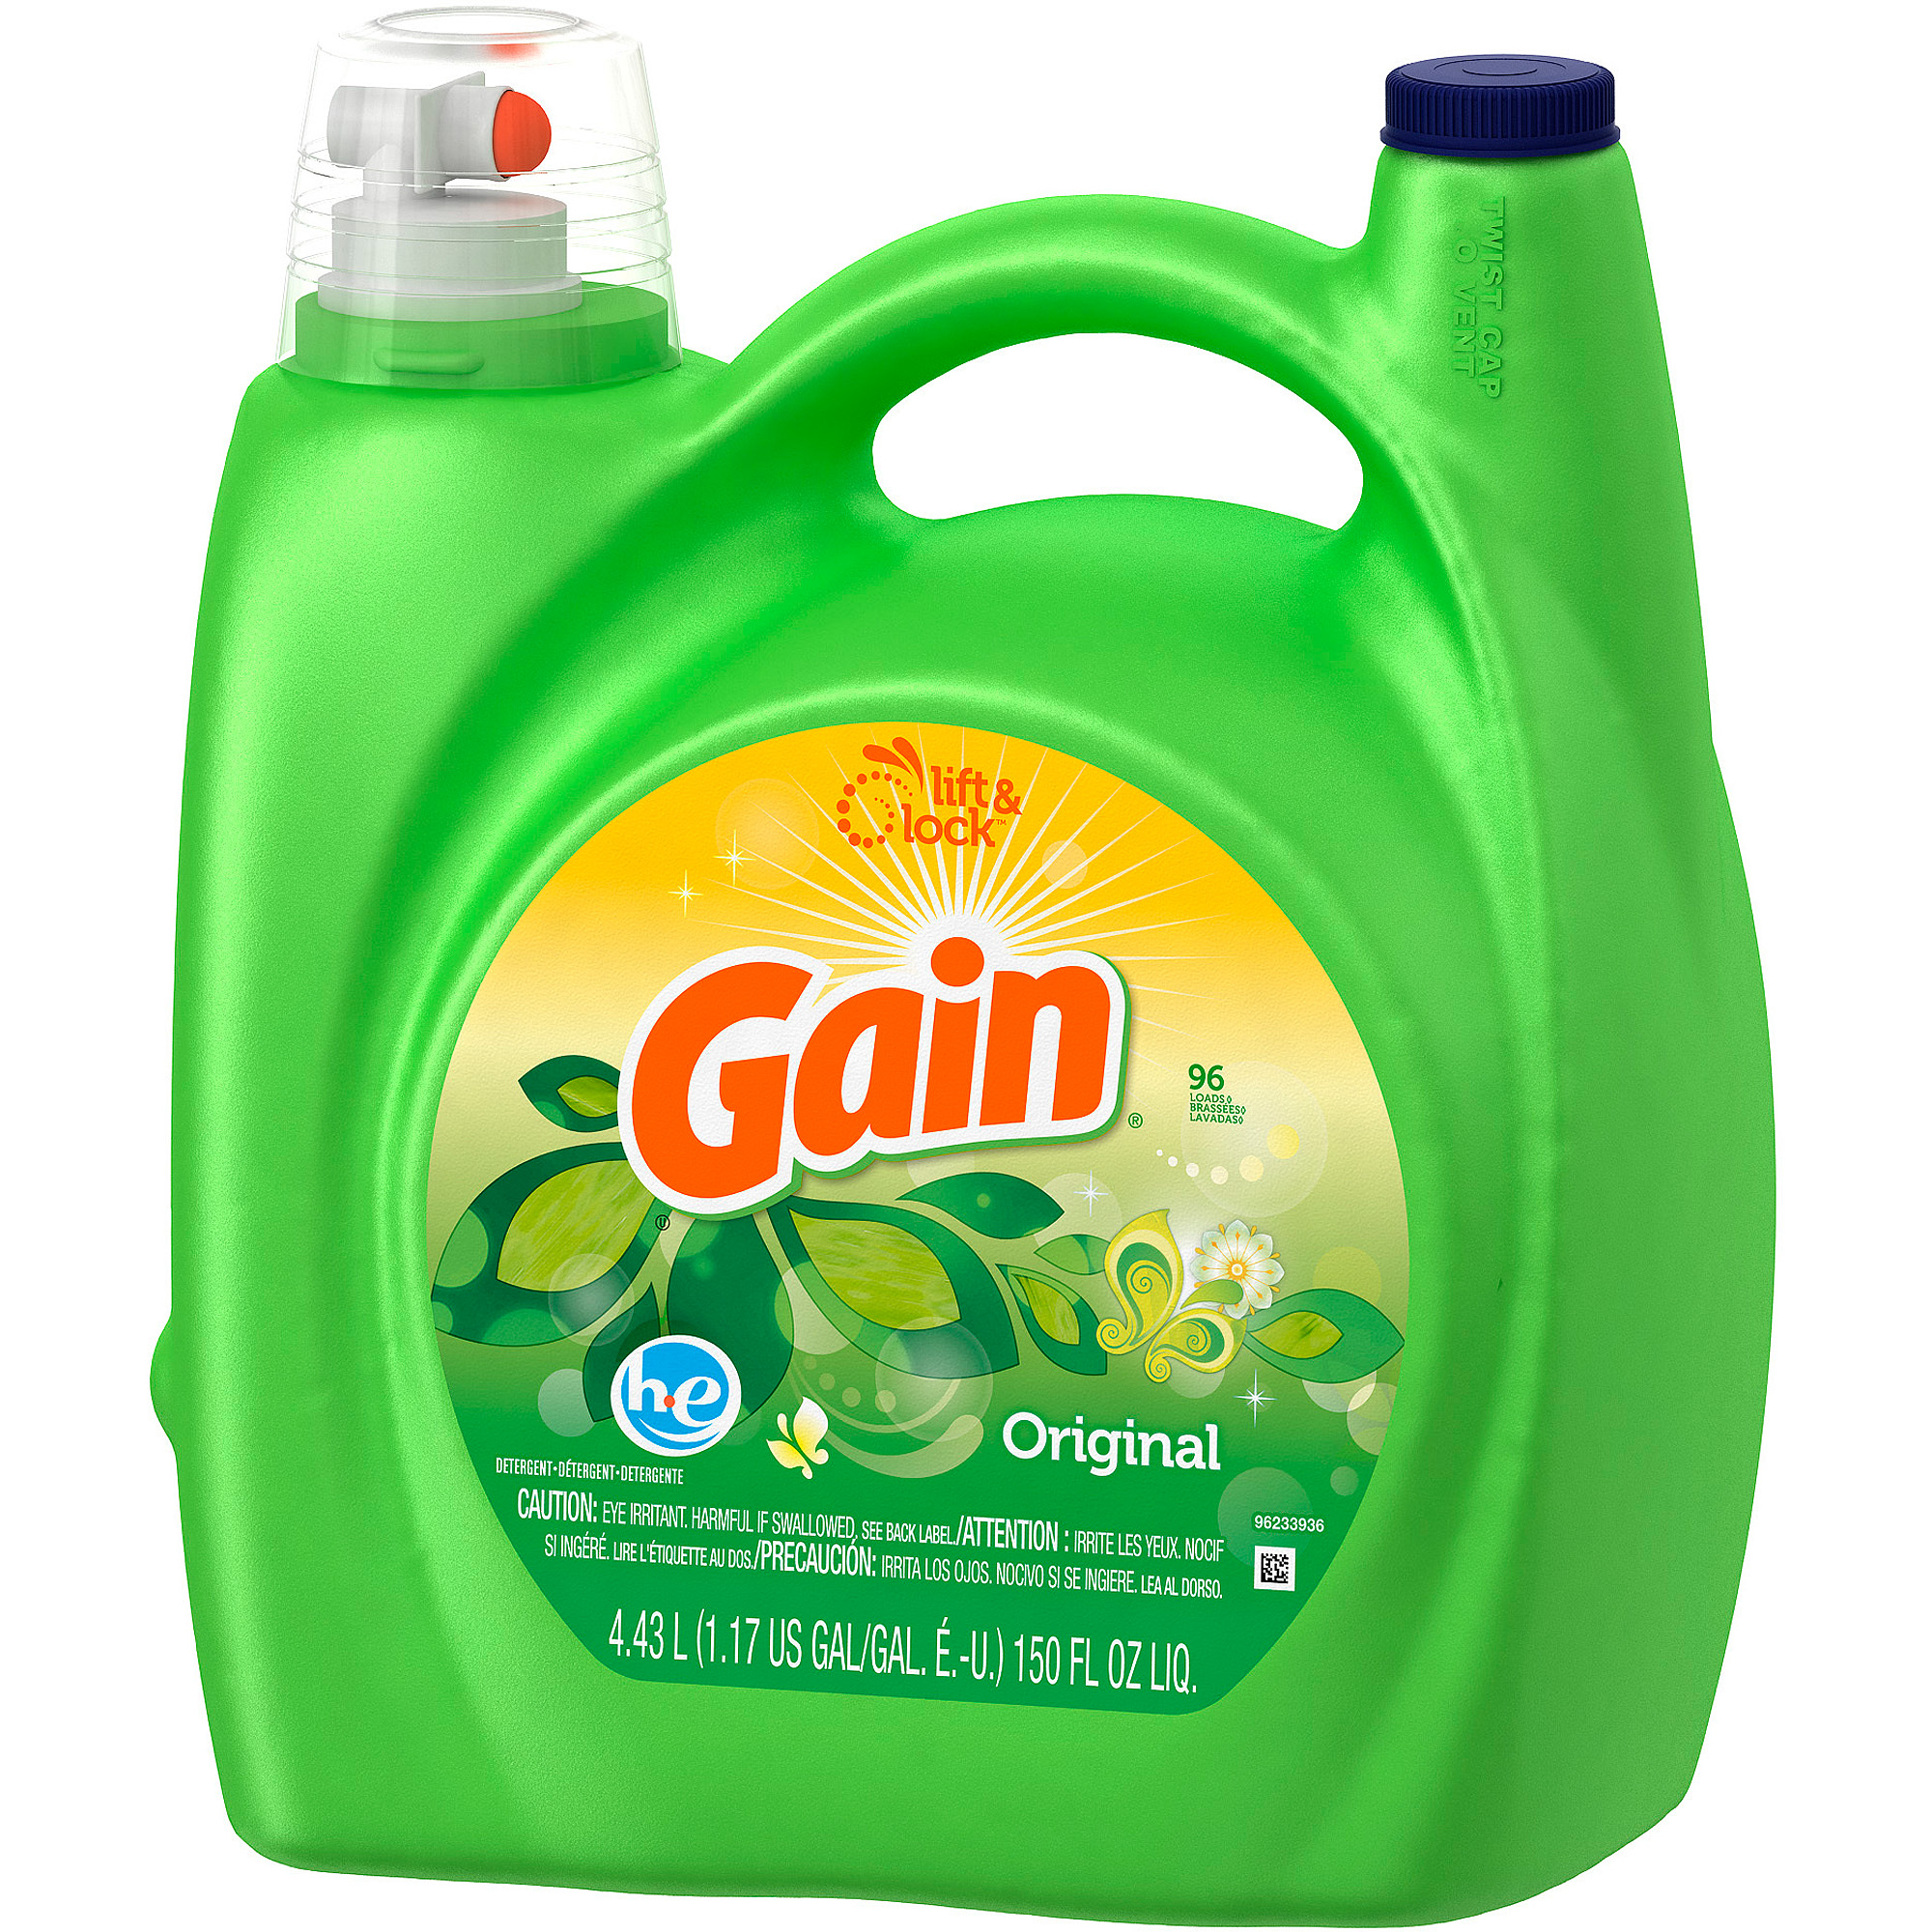 How Much He Detergent To Use Gain 2x Ultra For High Efficiency Machines Detergent Original